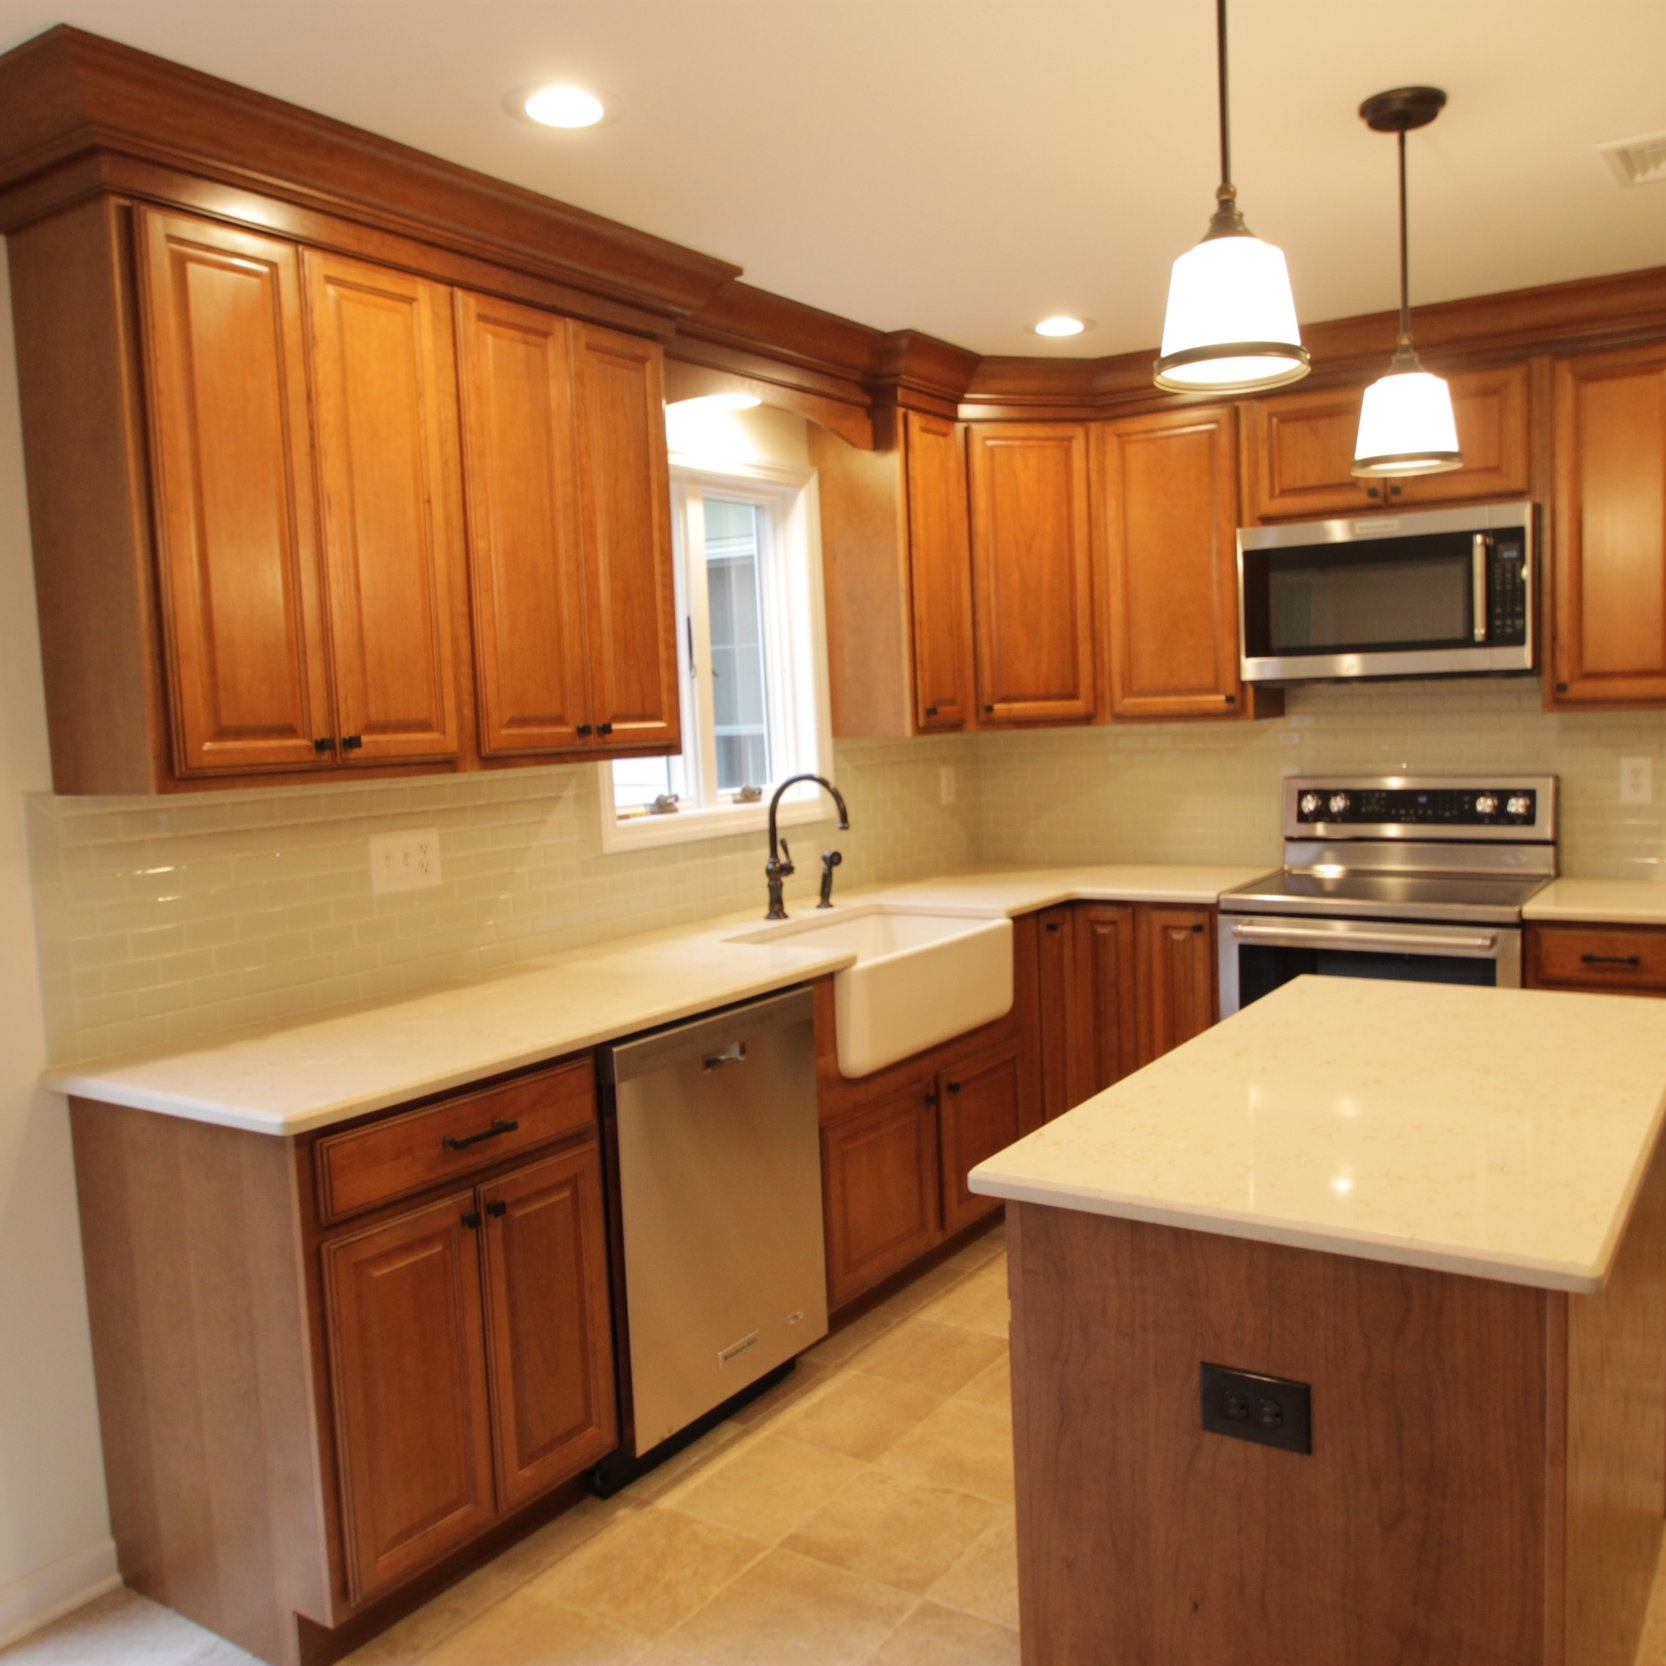 kitchen design and remodel basking ridge nj